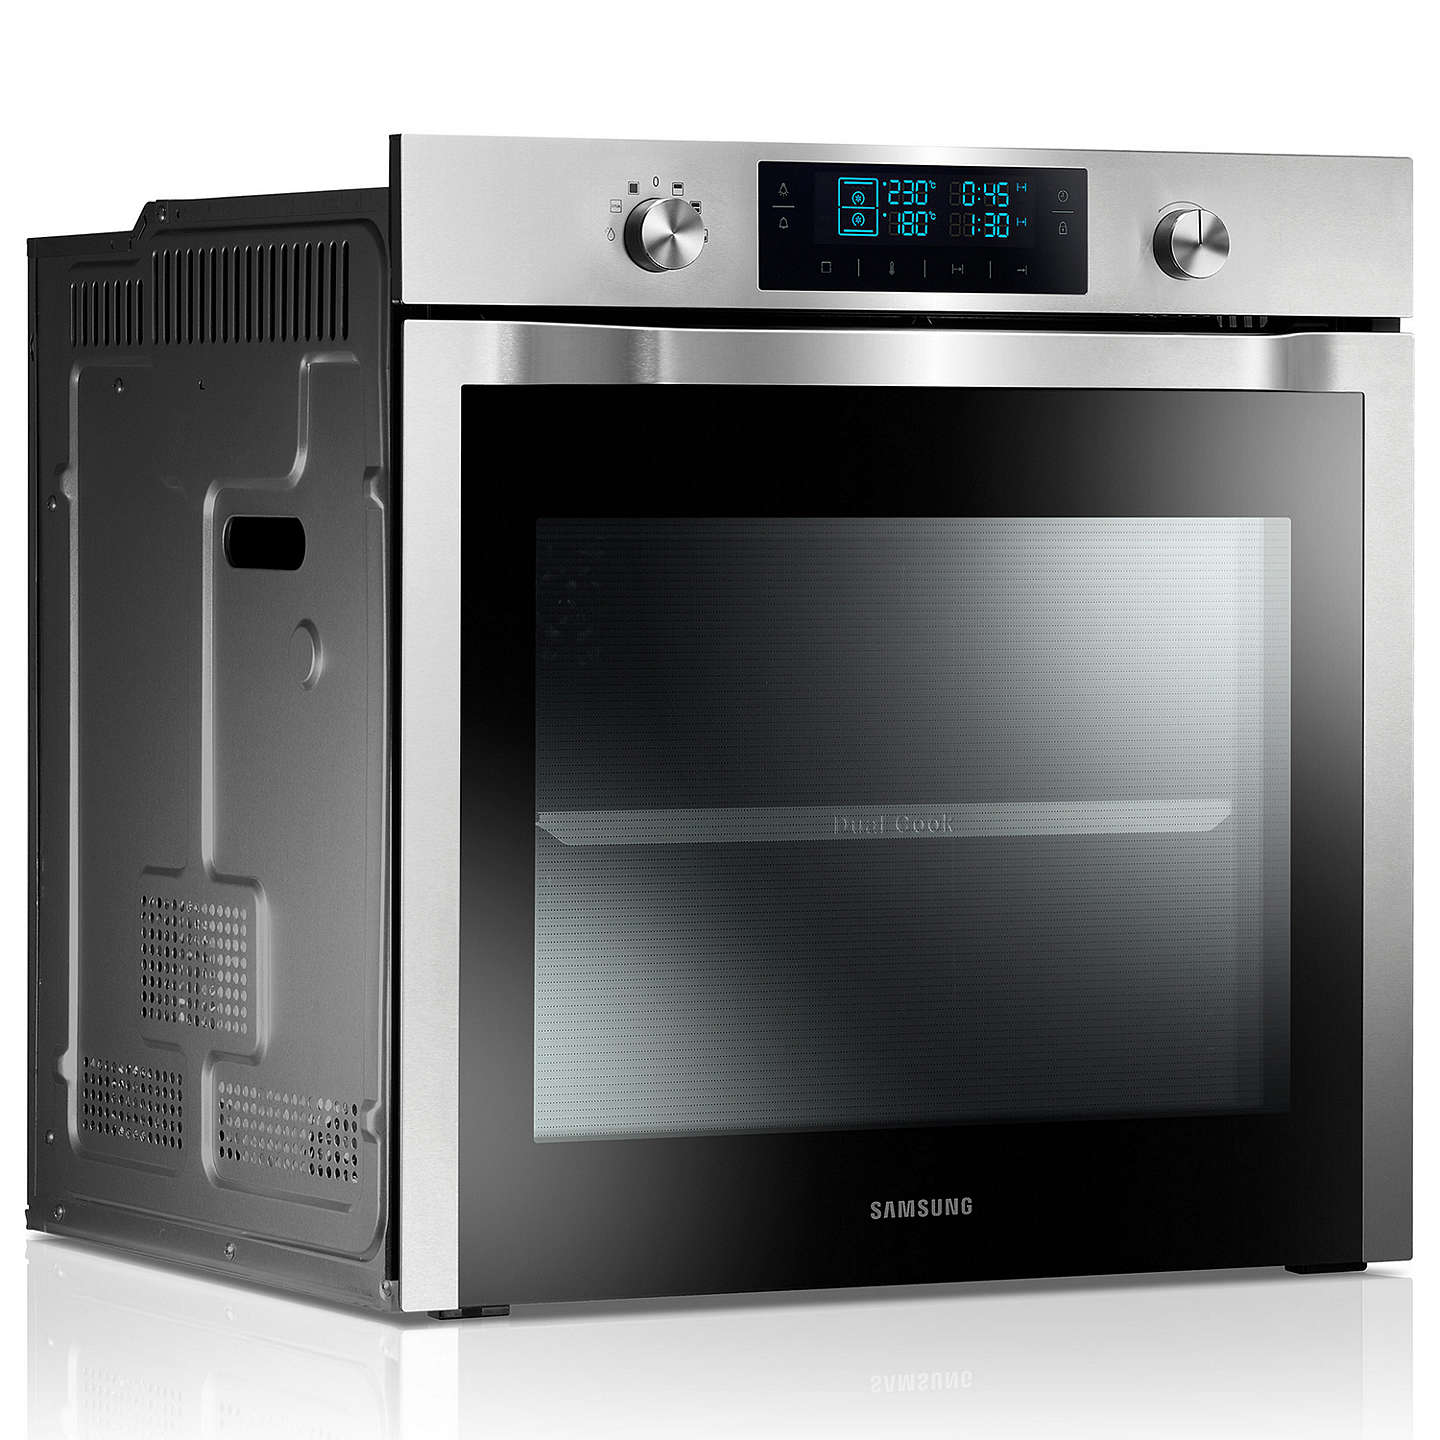 Buysamsung Nv70F7786Hs Dual Cook Single Electric Oven, Stainless Steel Online